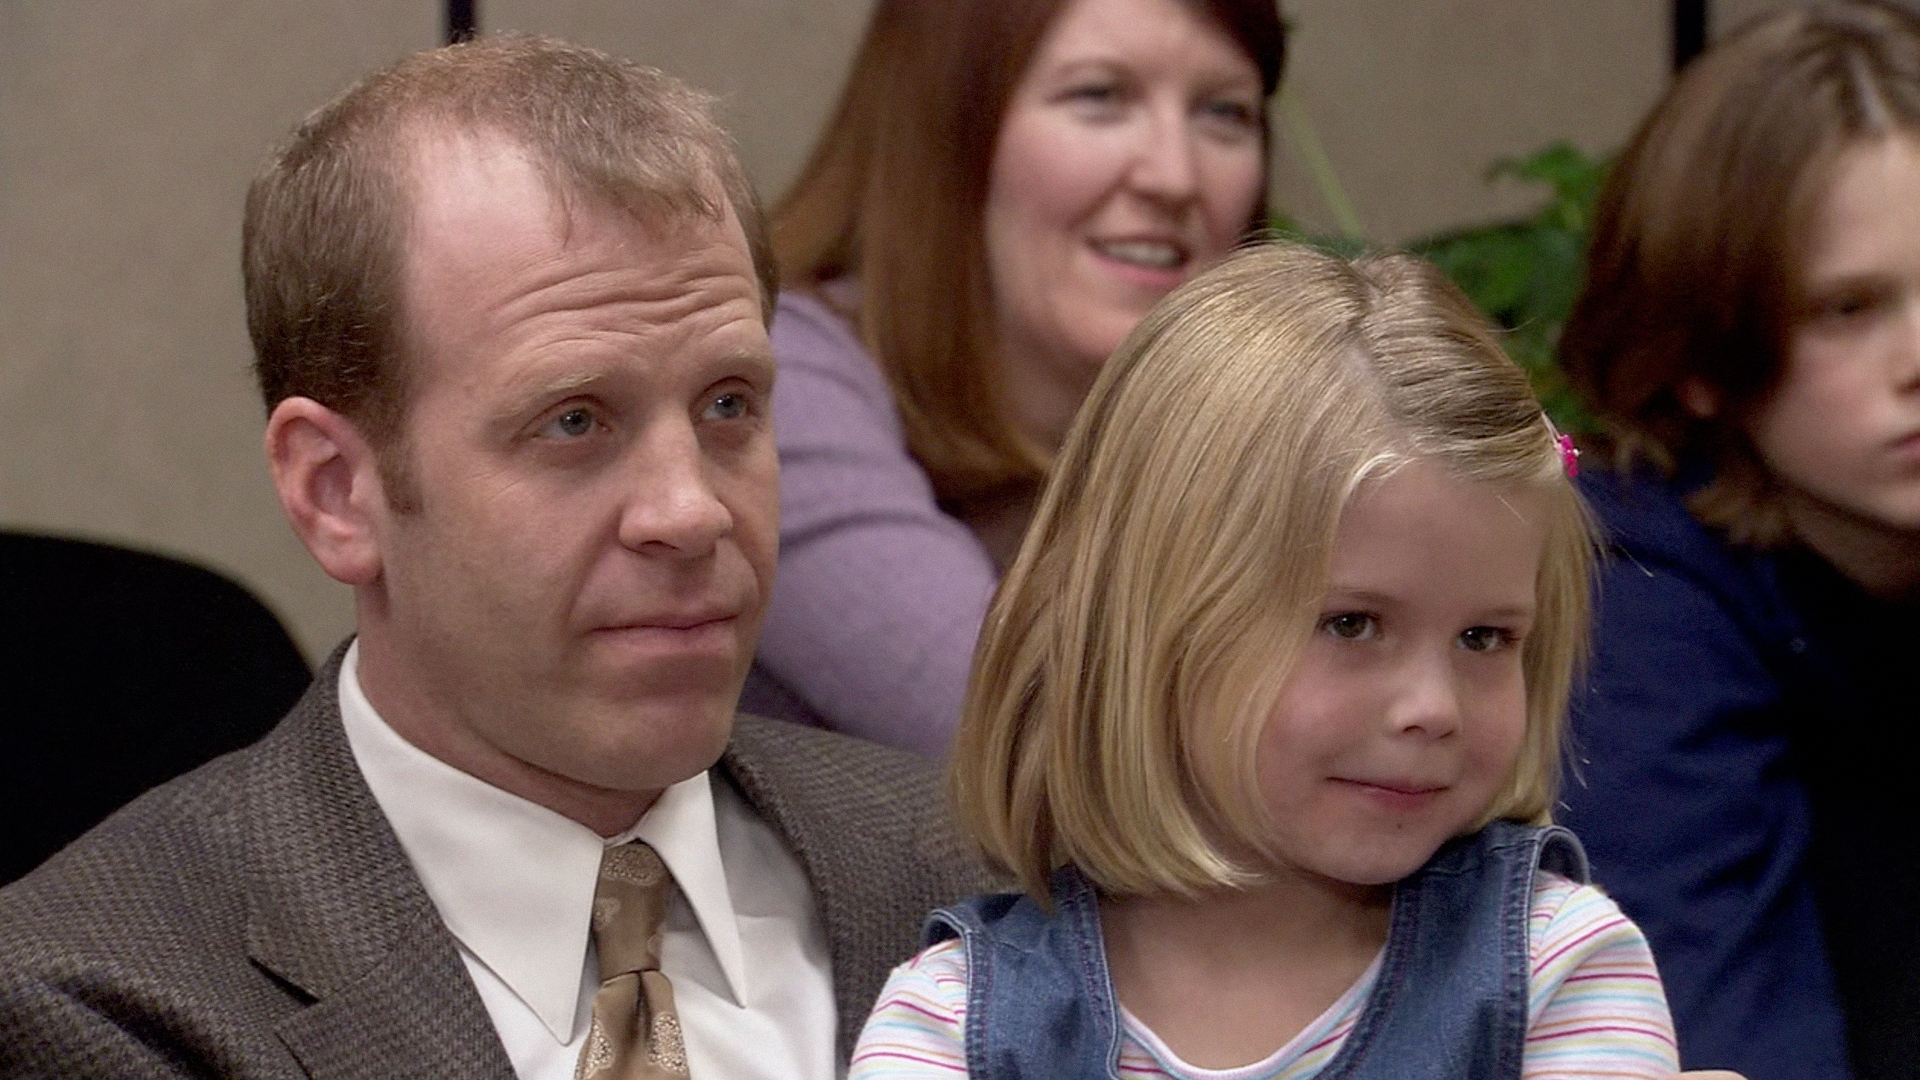 Take Your Daughter to Work Day (Extended Cut)